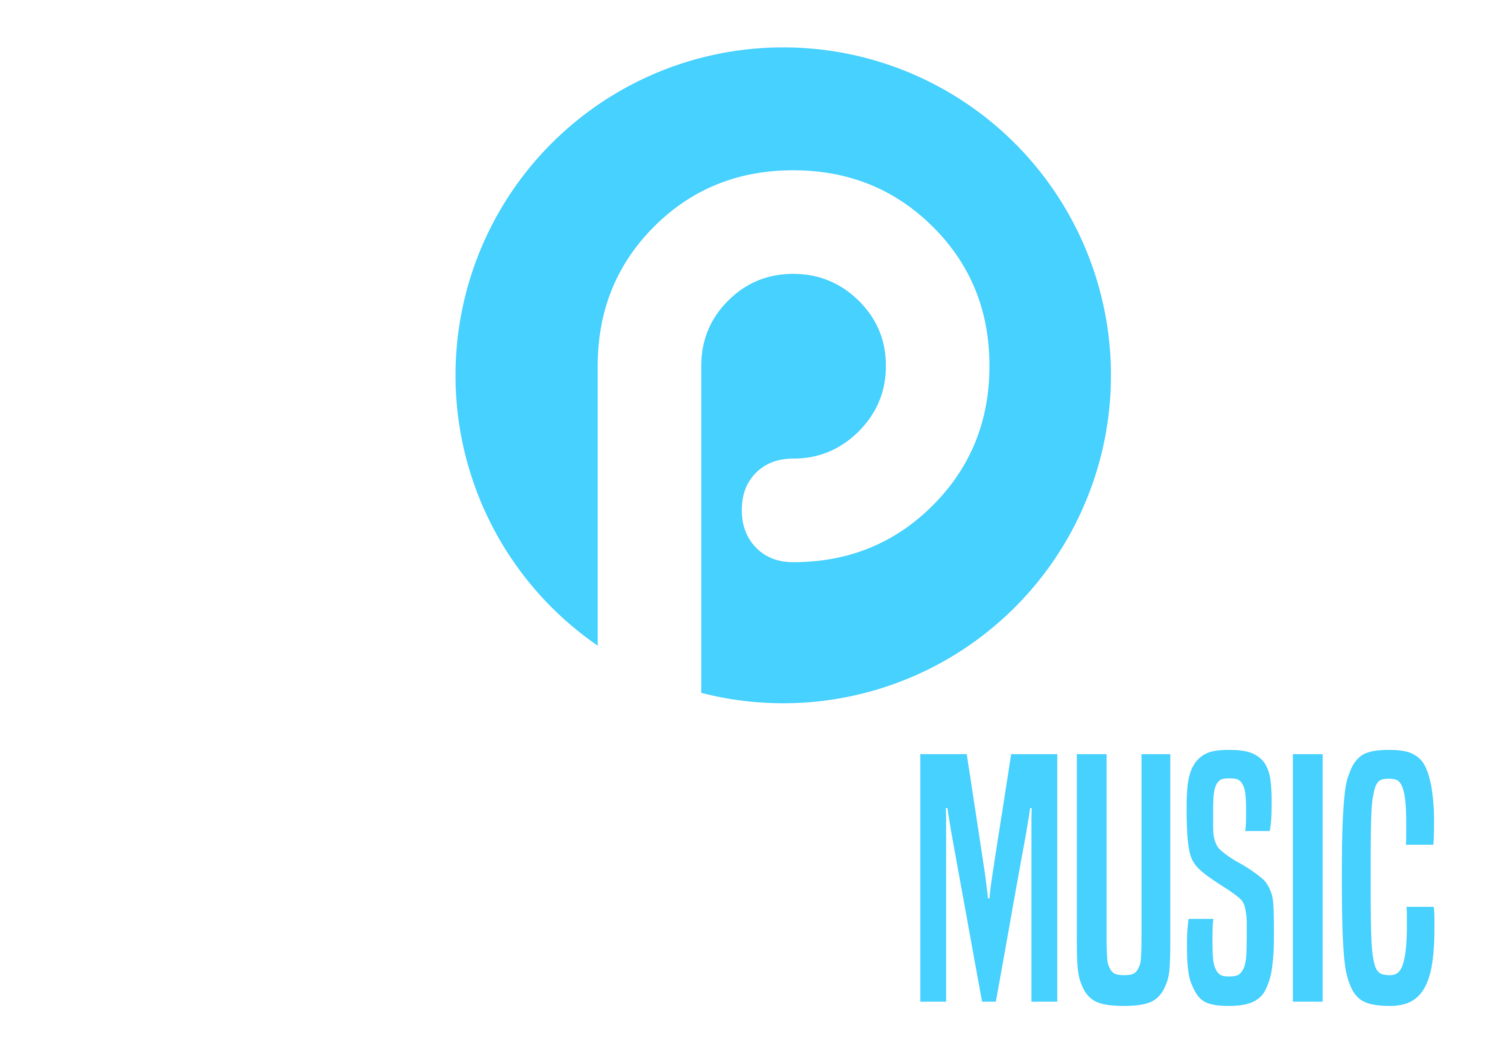 Pure Pop Music LLC - Publishing | Management | Consulting